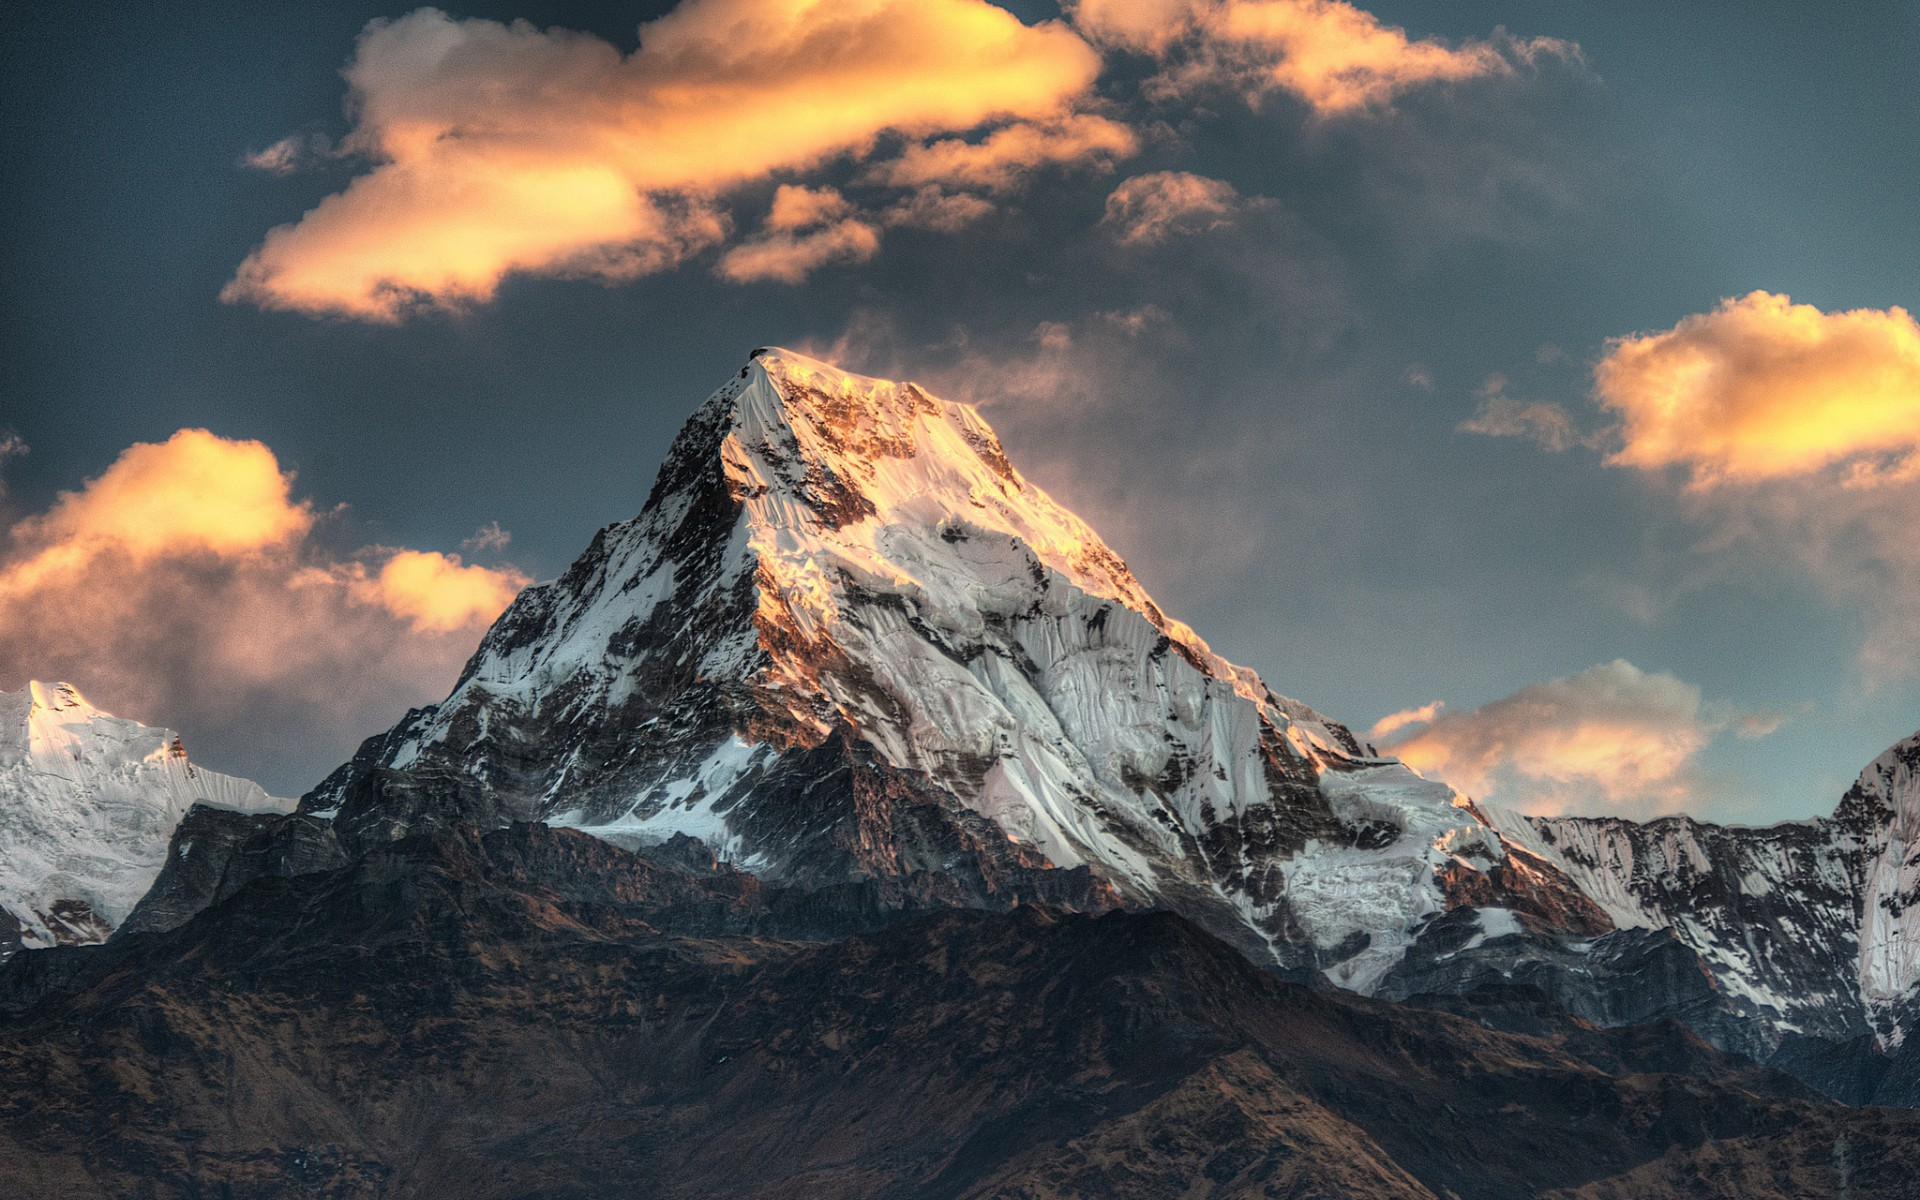 General 1920x1200 landscape mountains nature annapurna Himalayas